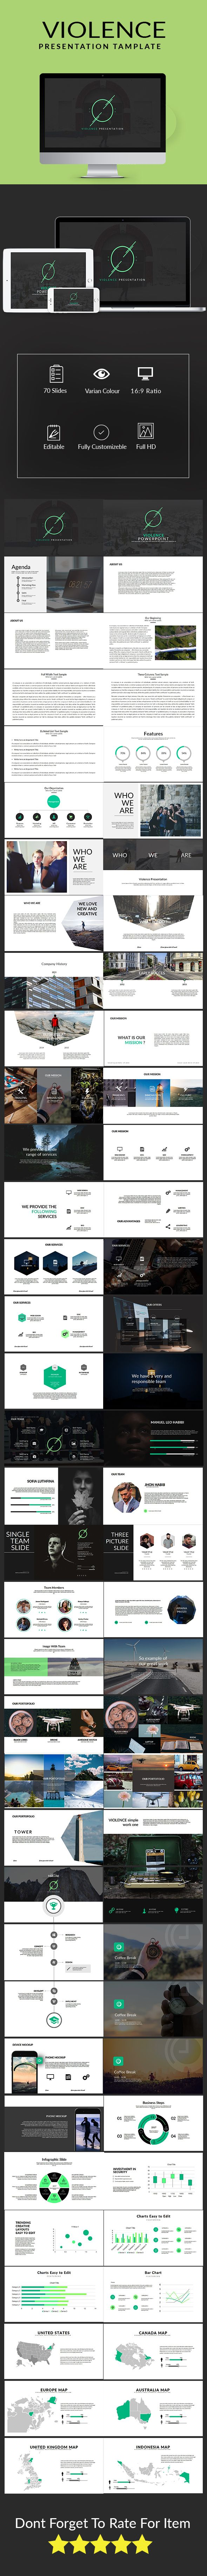 Violence multipurpose template powerpoint templates presentation violence multipurpose template powerpoint templates presentation templates download here toneelgroepblik Gallery